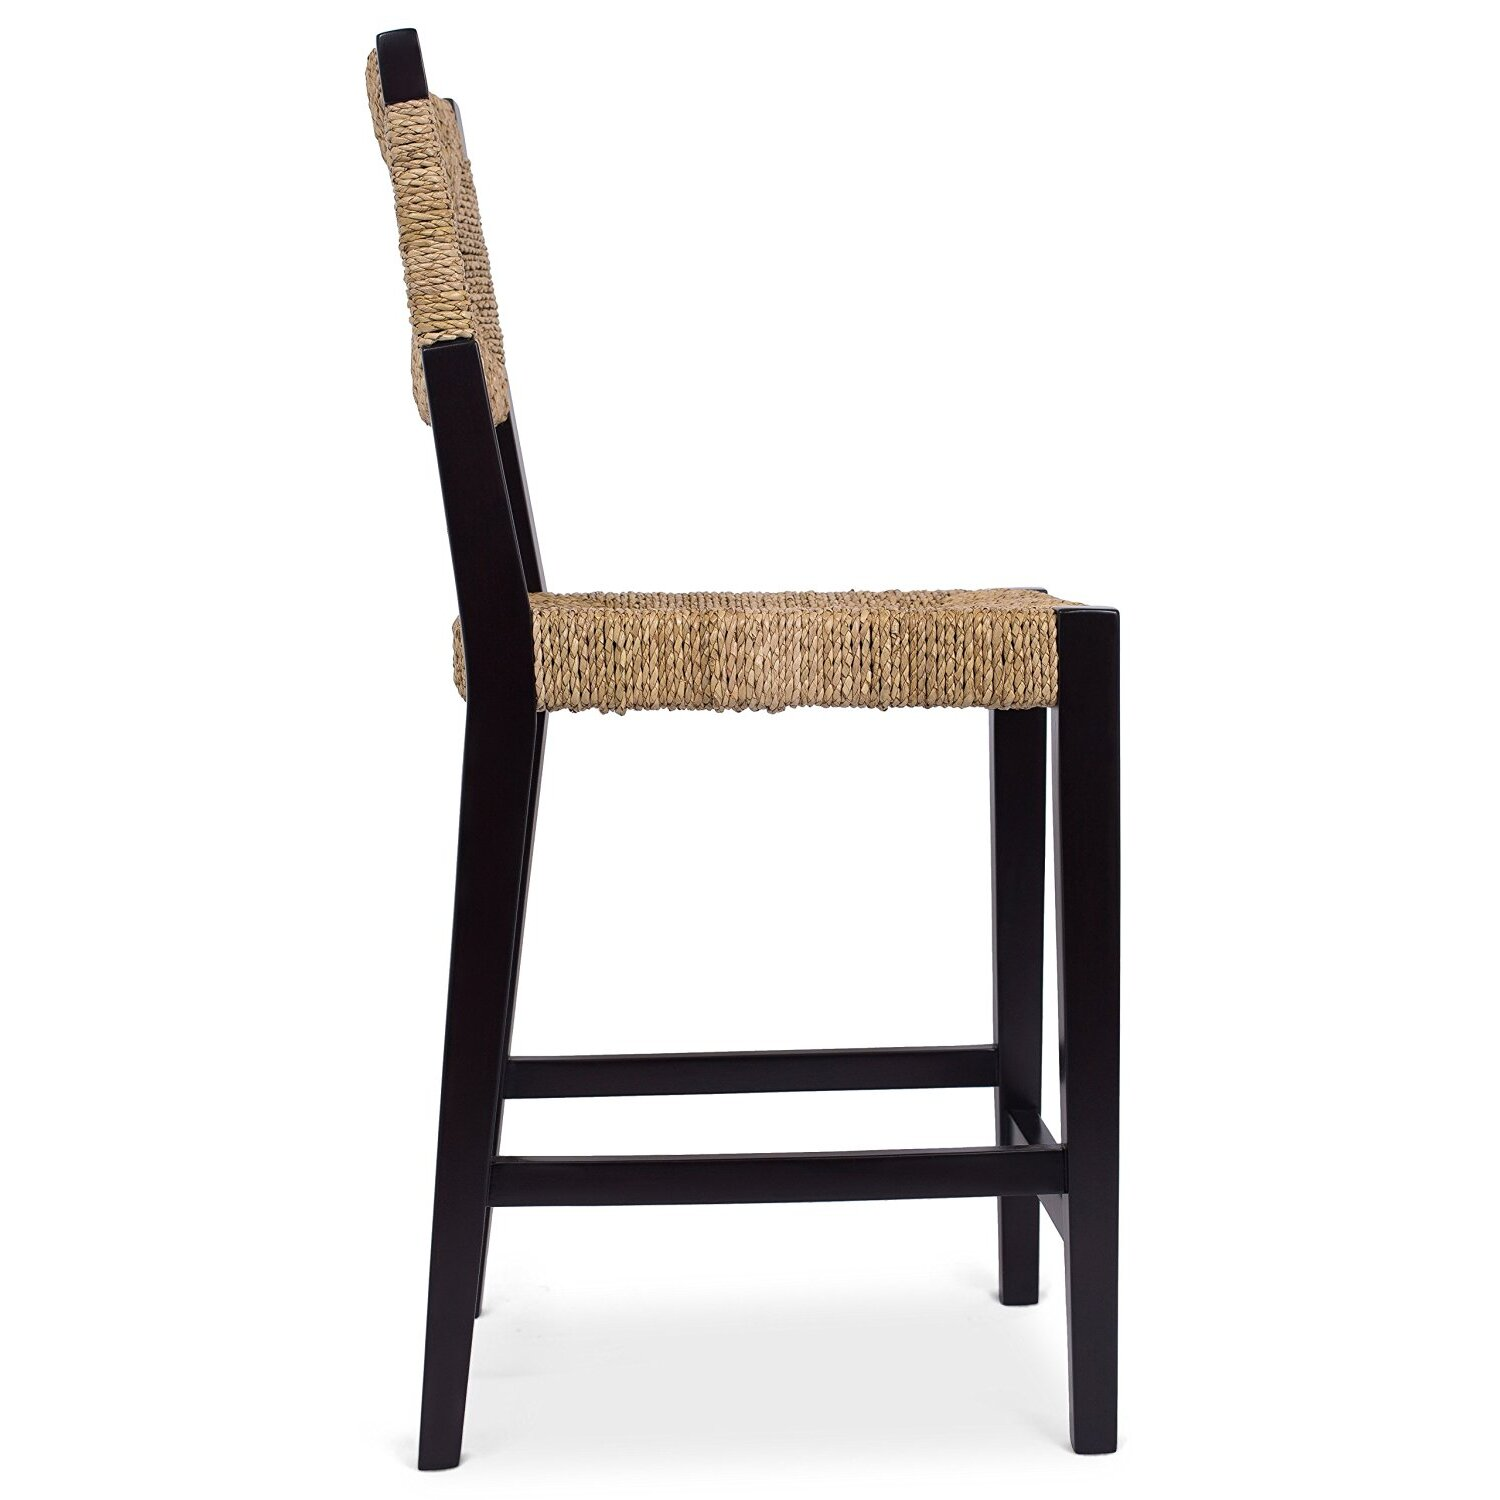 #876644 BirdRock Home Rush Weave 24 Counter Height Bar Stool Wayfair with 1500x1500 px of Recommended Tall Bar Bench 15001500 save image @ avoidforclosure.info